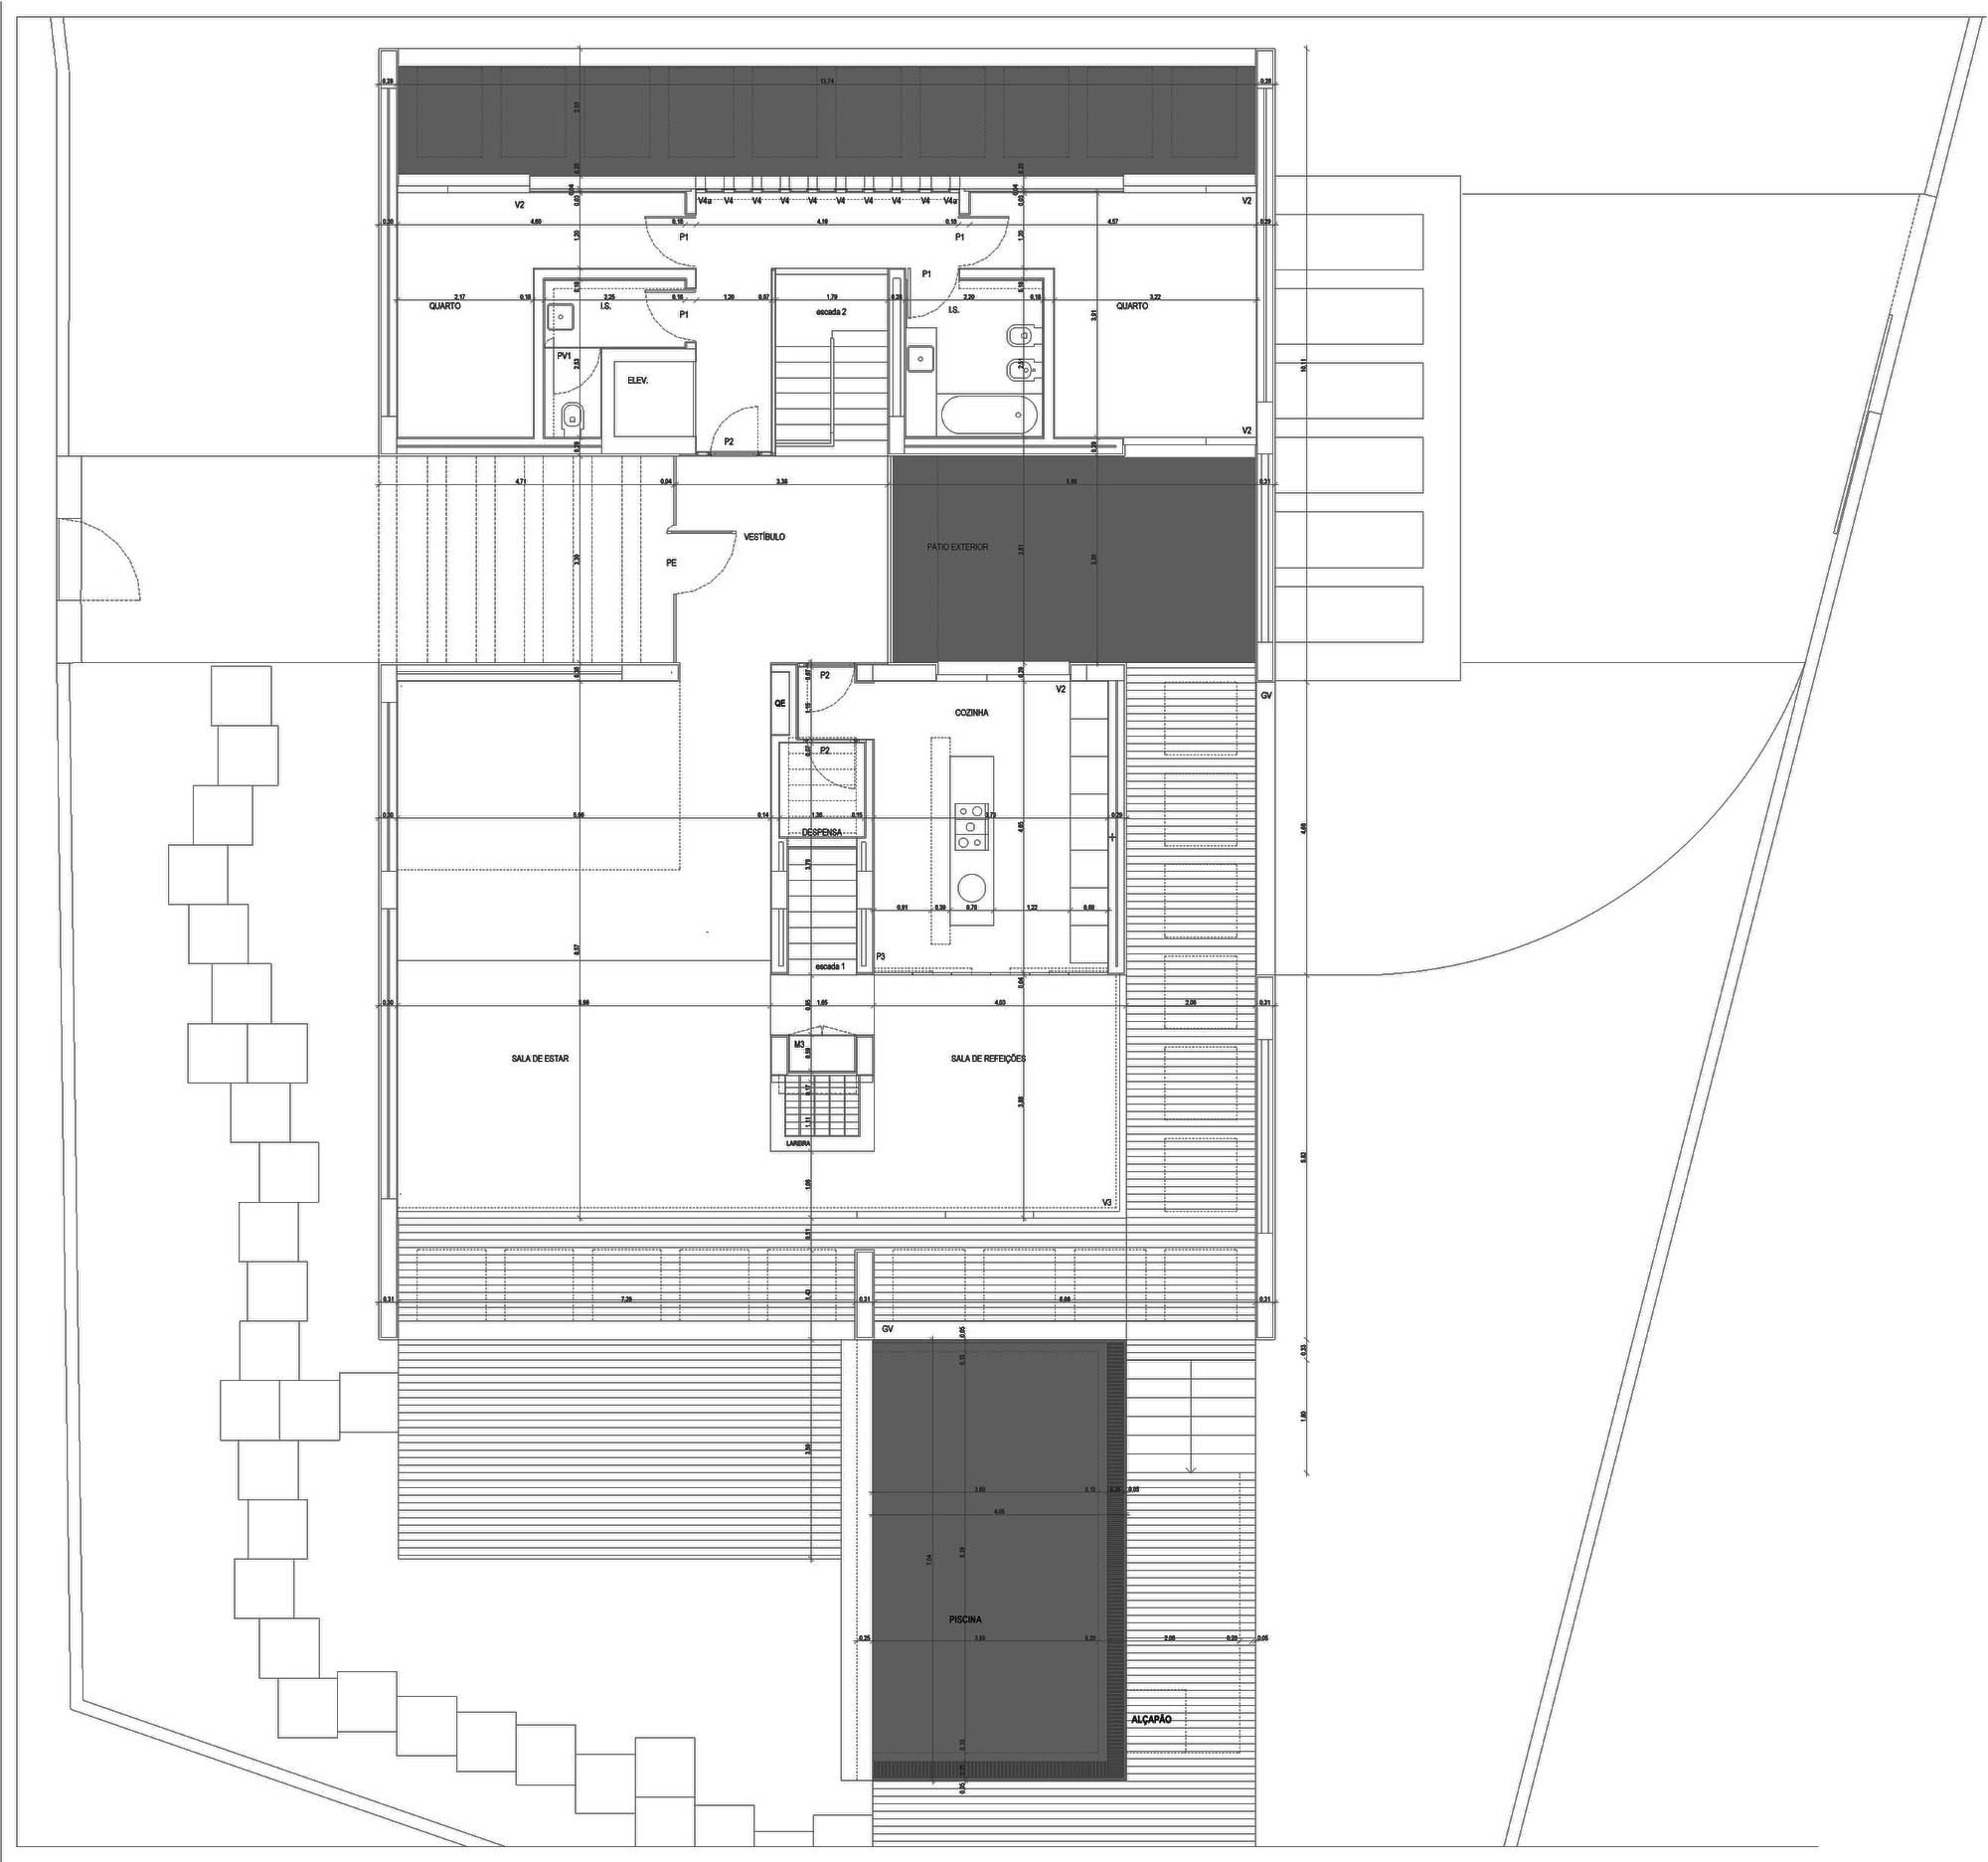 Ground Floor Plan, C+P House in Lisbon, Portugal by Gonçalo das Neves Nunes